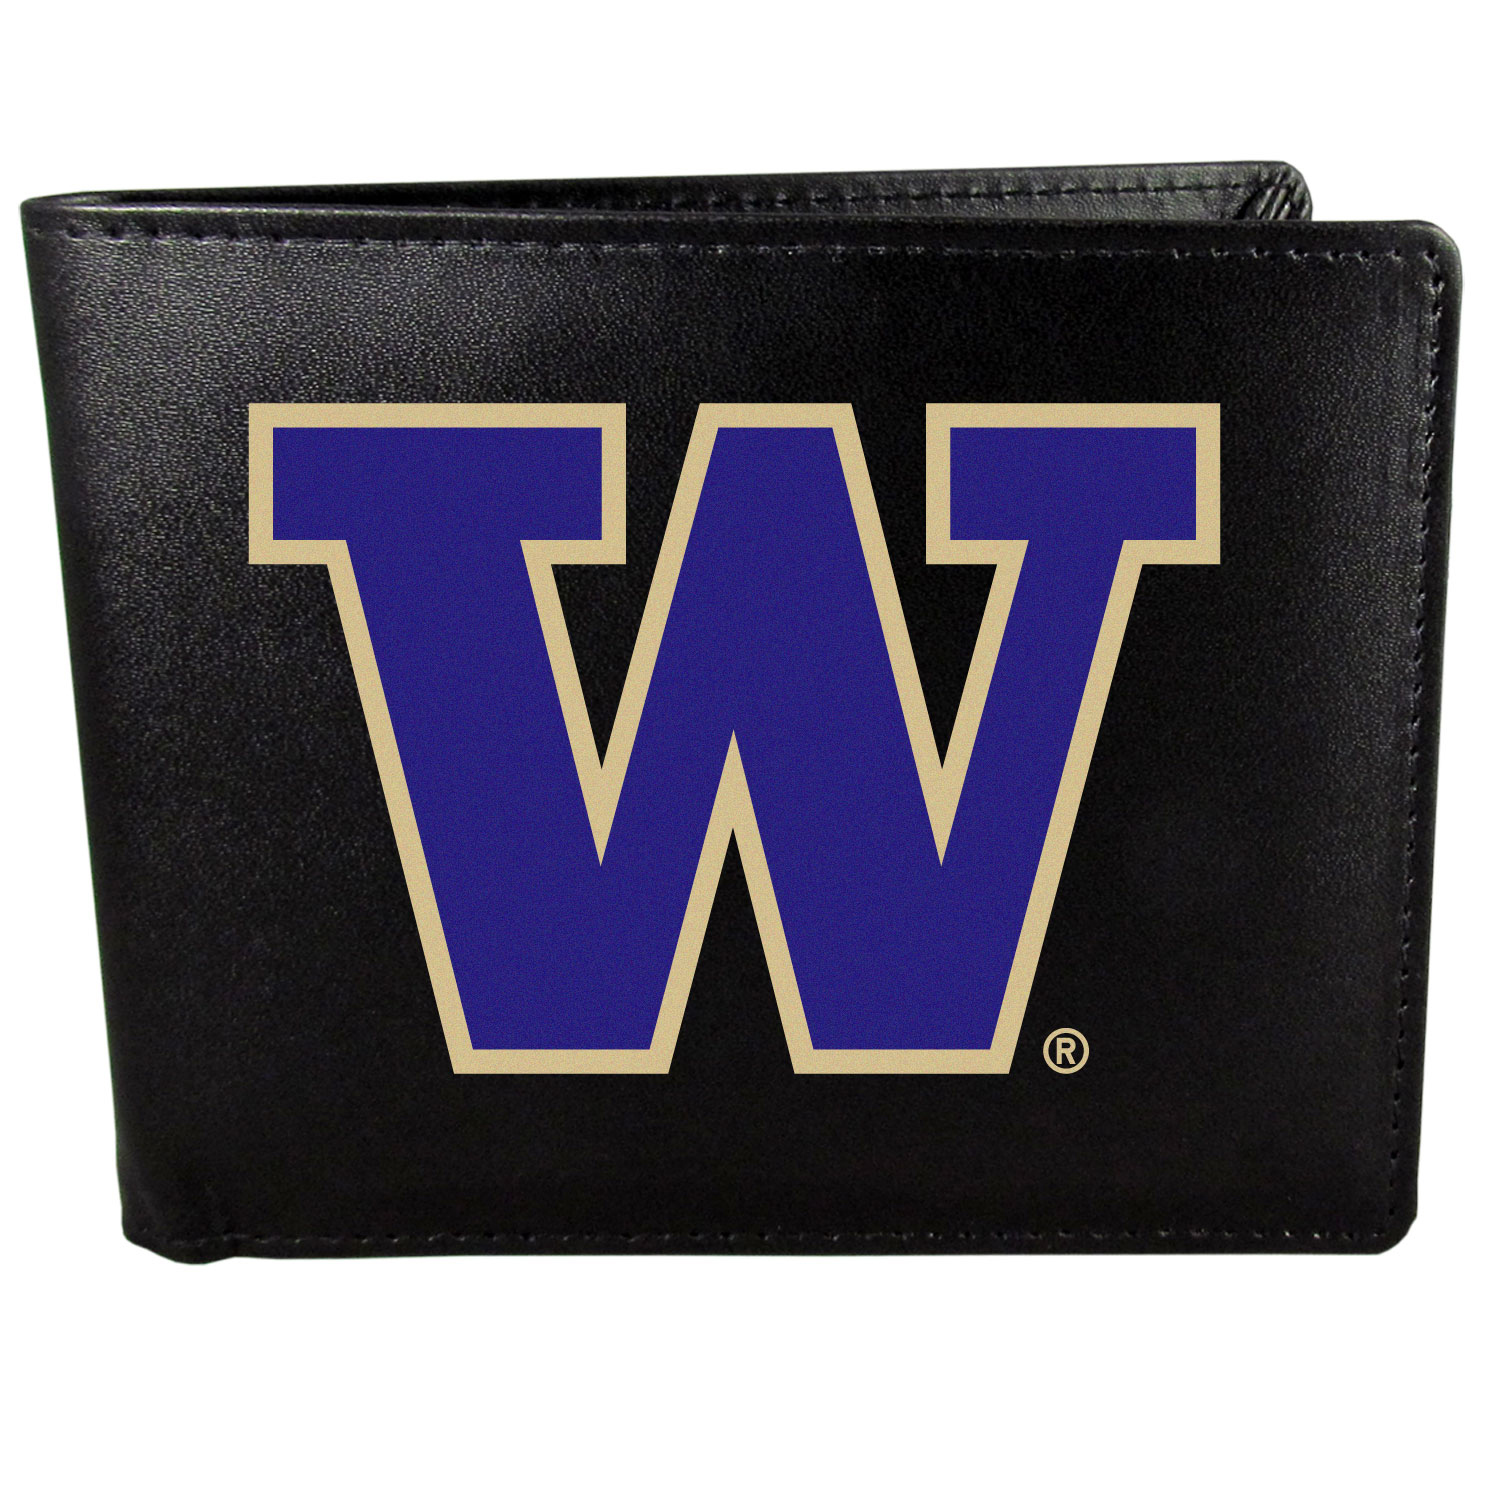 Washington Huskies Leather Bi-fold Wallet, Large Logo - Our classic fine leather bi-fold wallet is meticulously crafted with genuine leather that will age beautifully so you will have a quality wallet for years to come. The wallet opens to a large, billfold pocket and numerous credit card slots and has a convenient windowed ID slot. The front of the wallet features an extra large Washington Huskies printed logo.